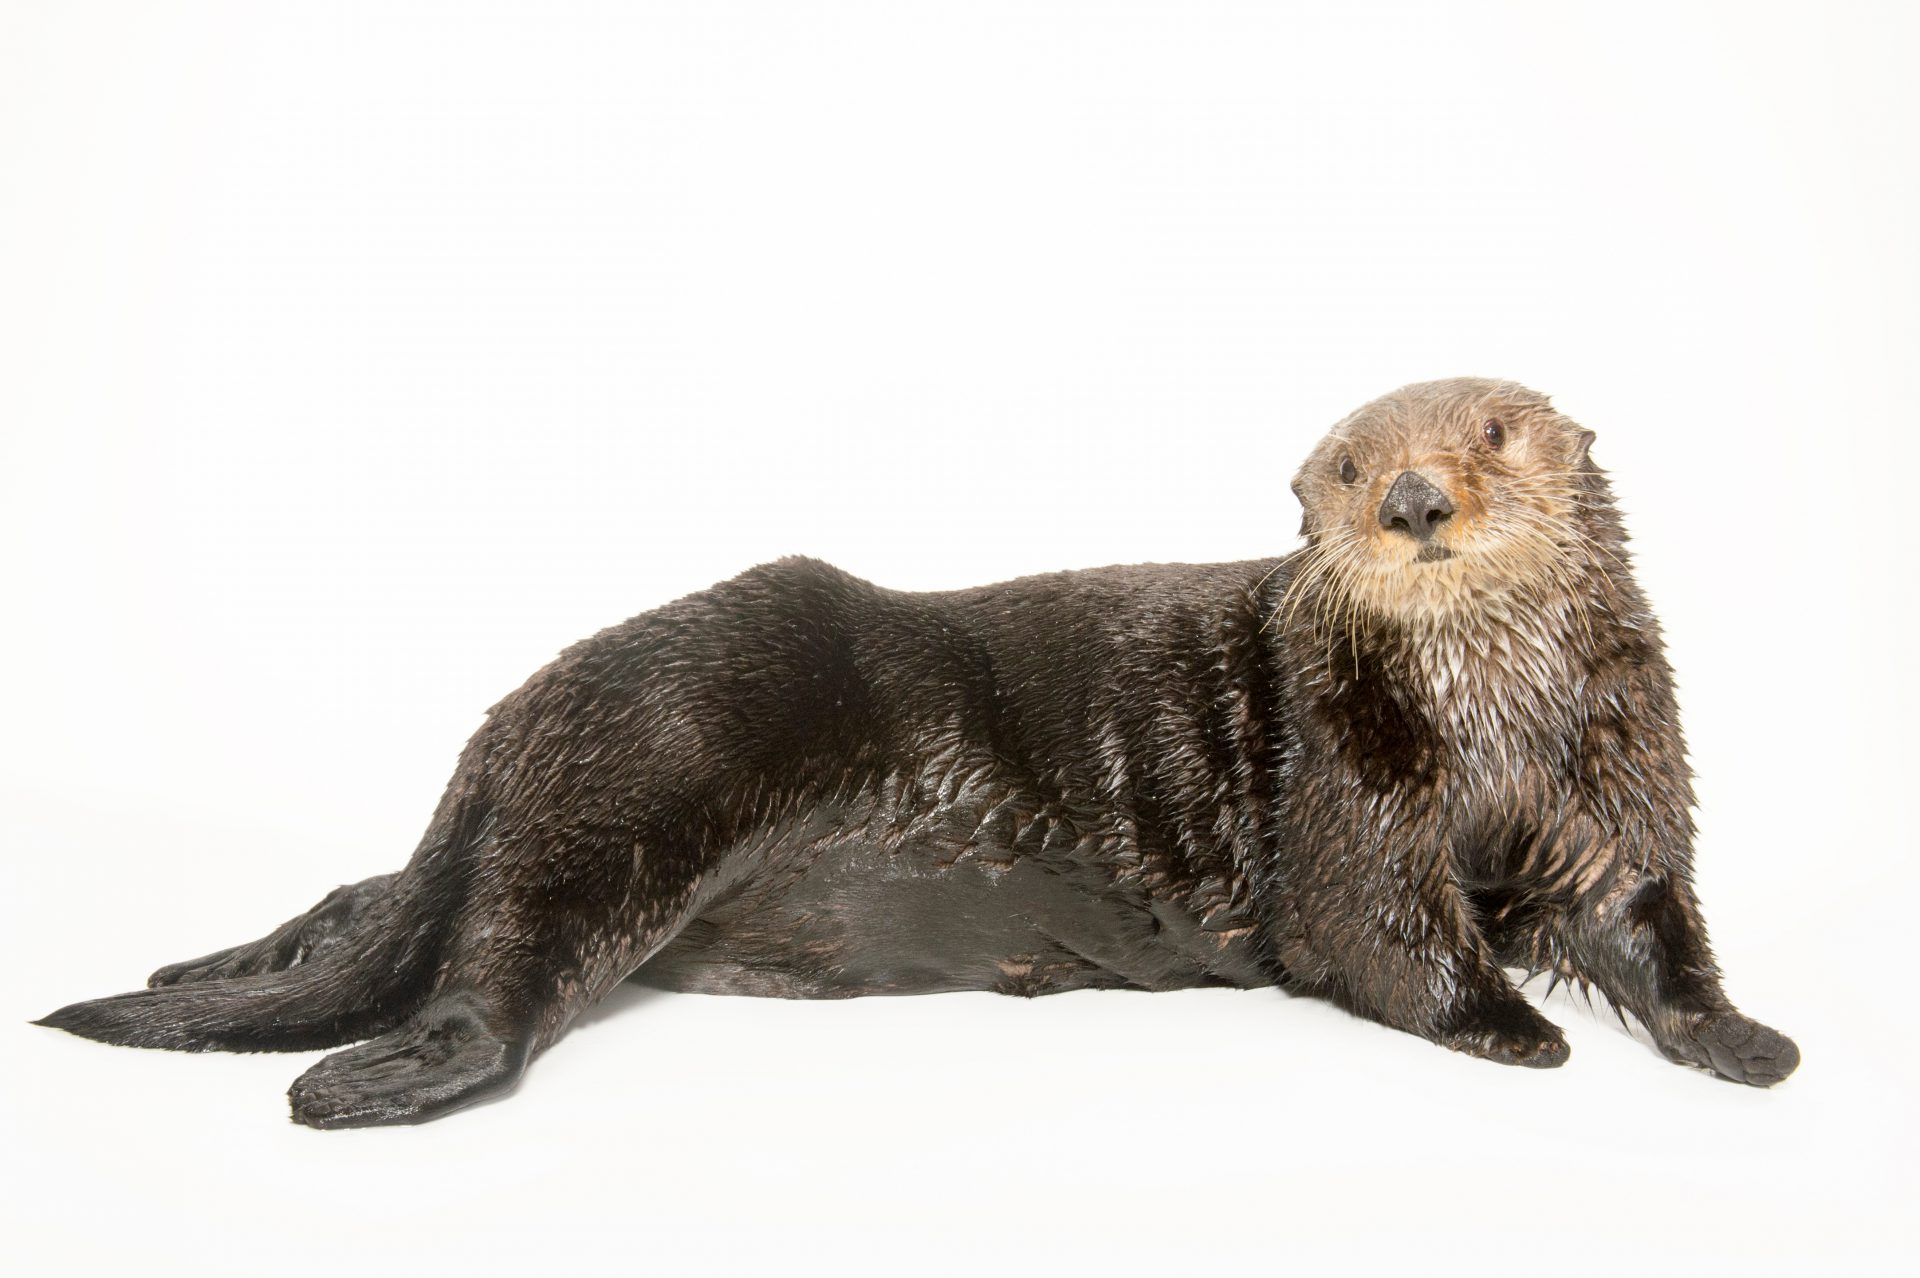 Picture of an endangered (IUCN) and federally threatened Northern sea otter (Enhydra lutris kenyoni) named Capers at the Minnesota Zoo. Capers was found orphaned on the Alaska coast line in Port Graham, AK, in May 2006.